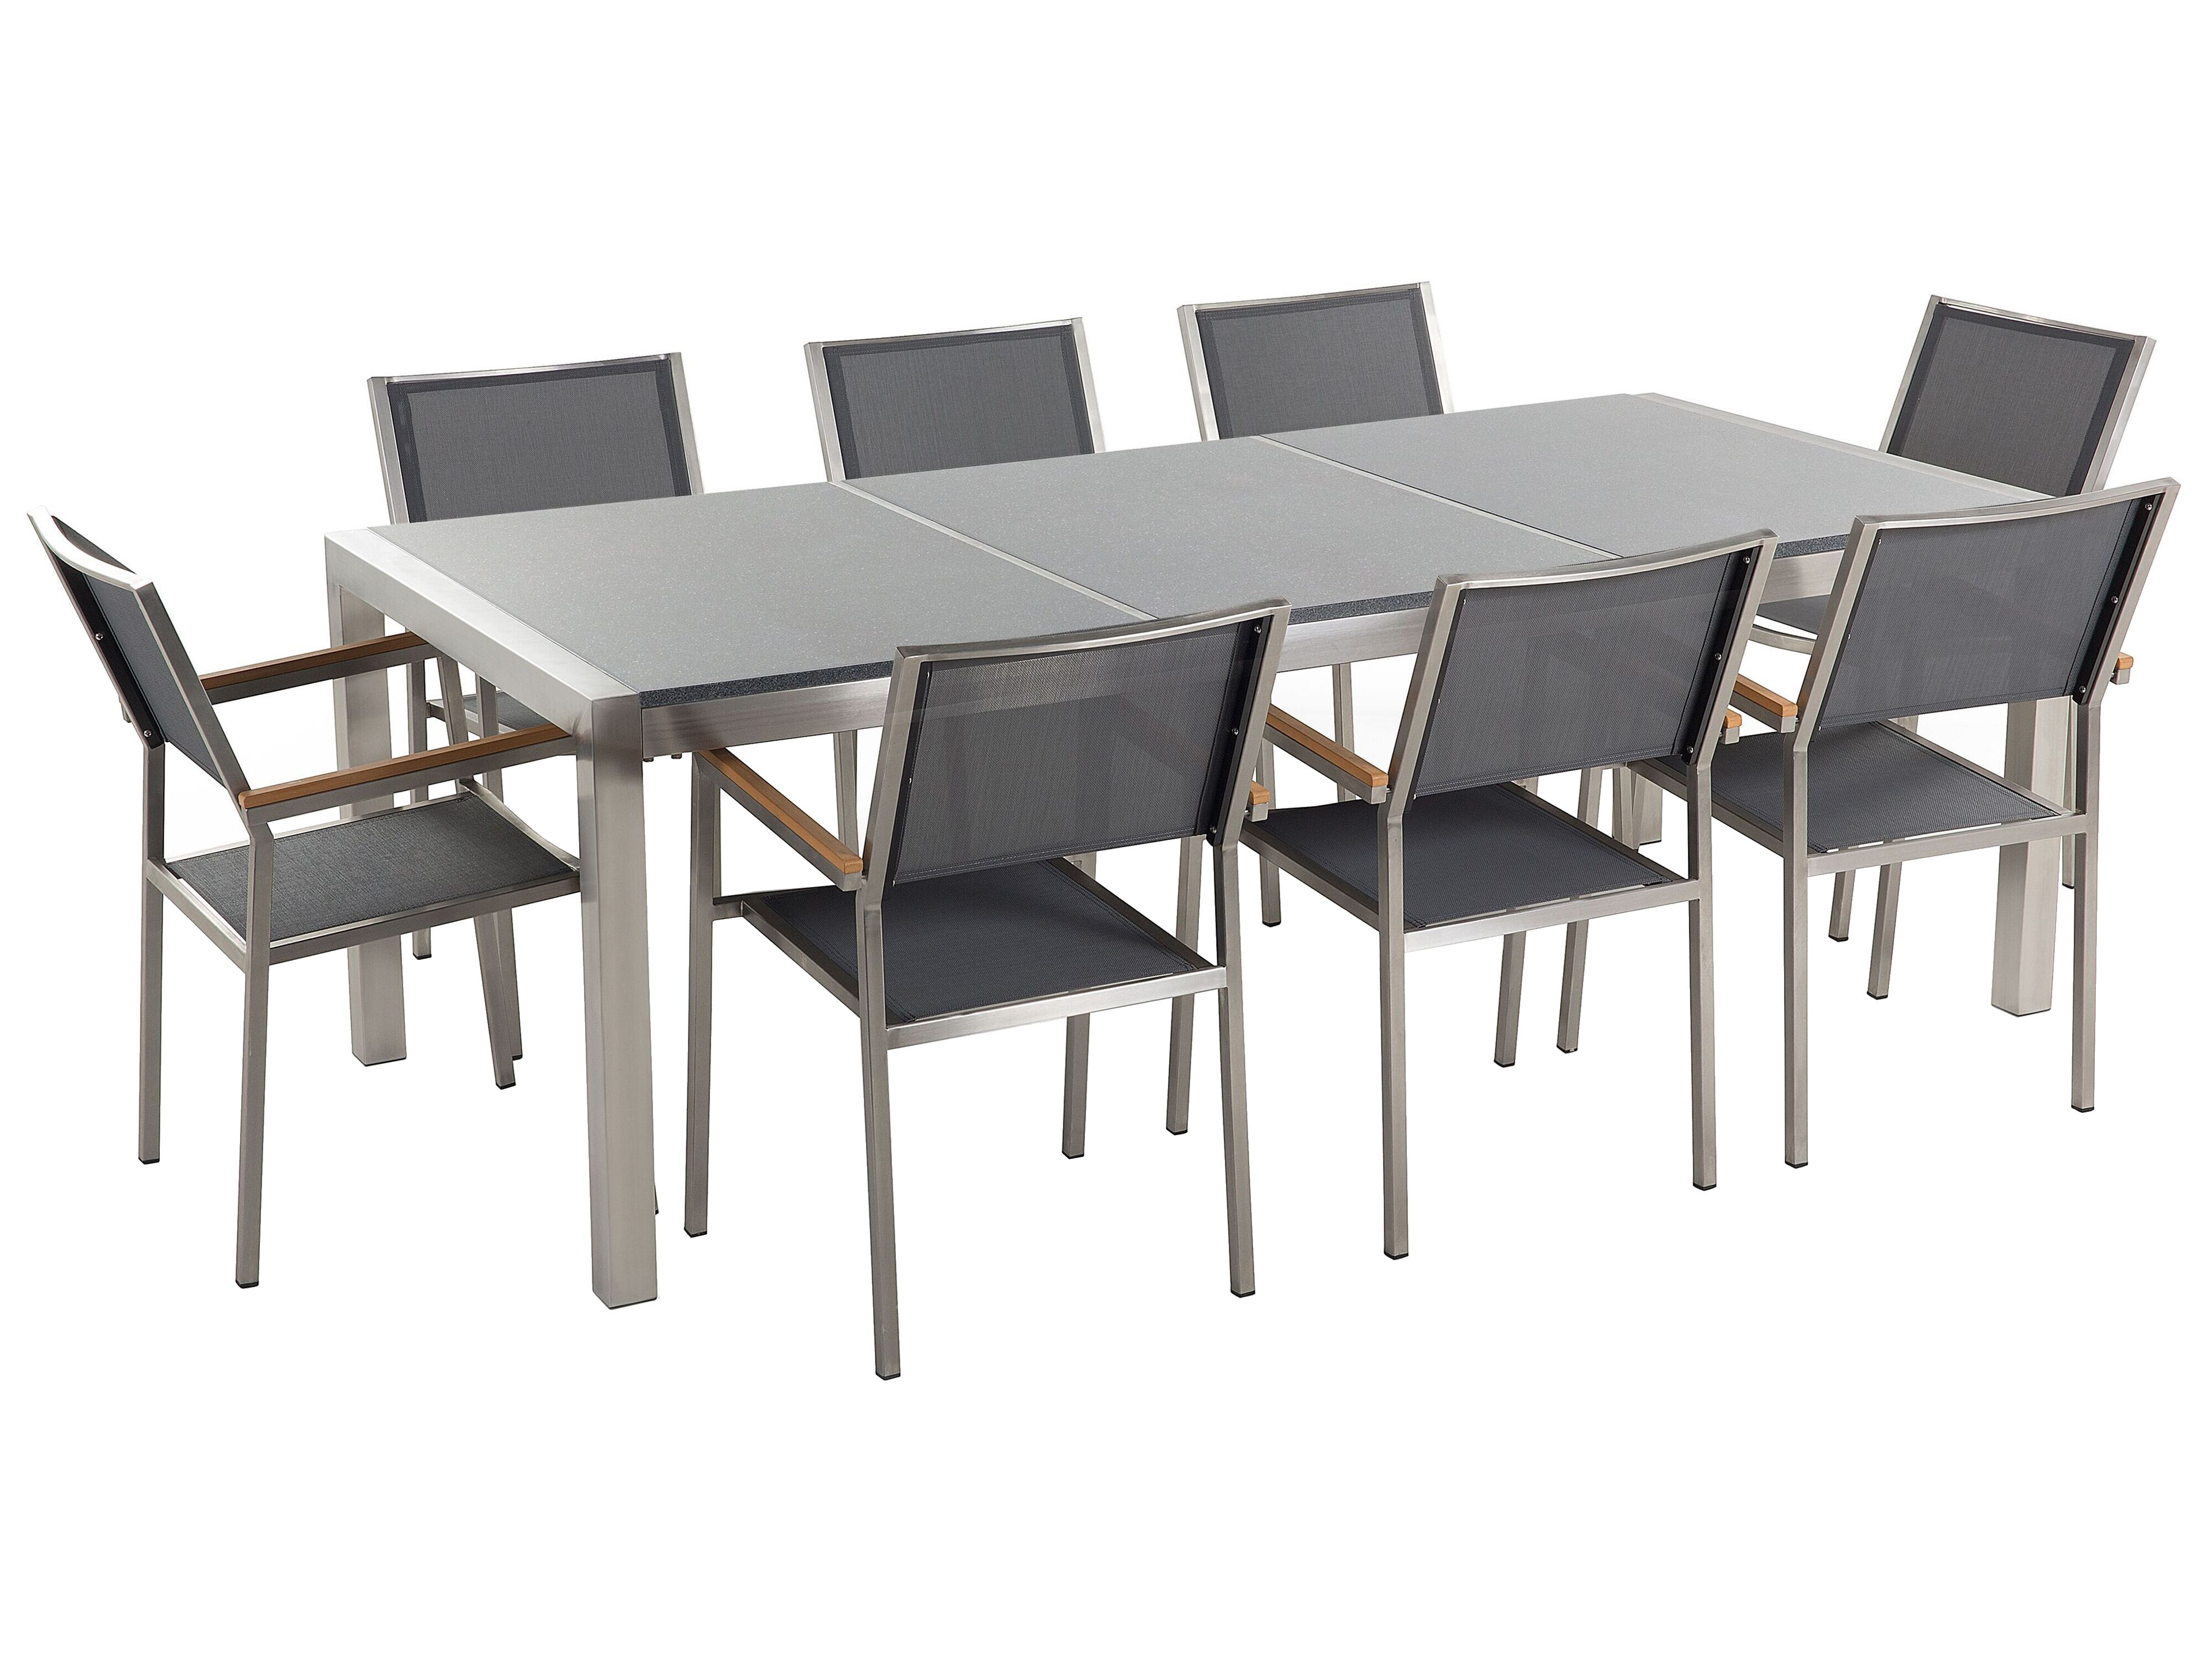 9 Seater Garden Dining Set Grey Granite Top and Grey Chairs ...